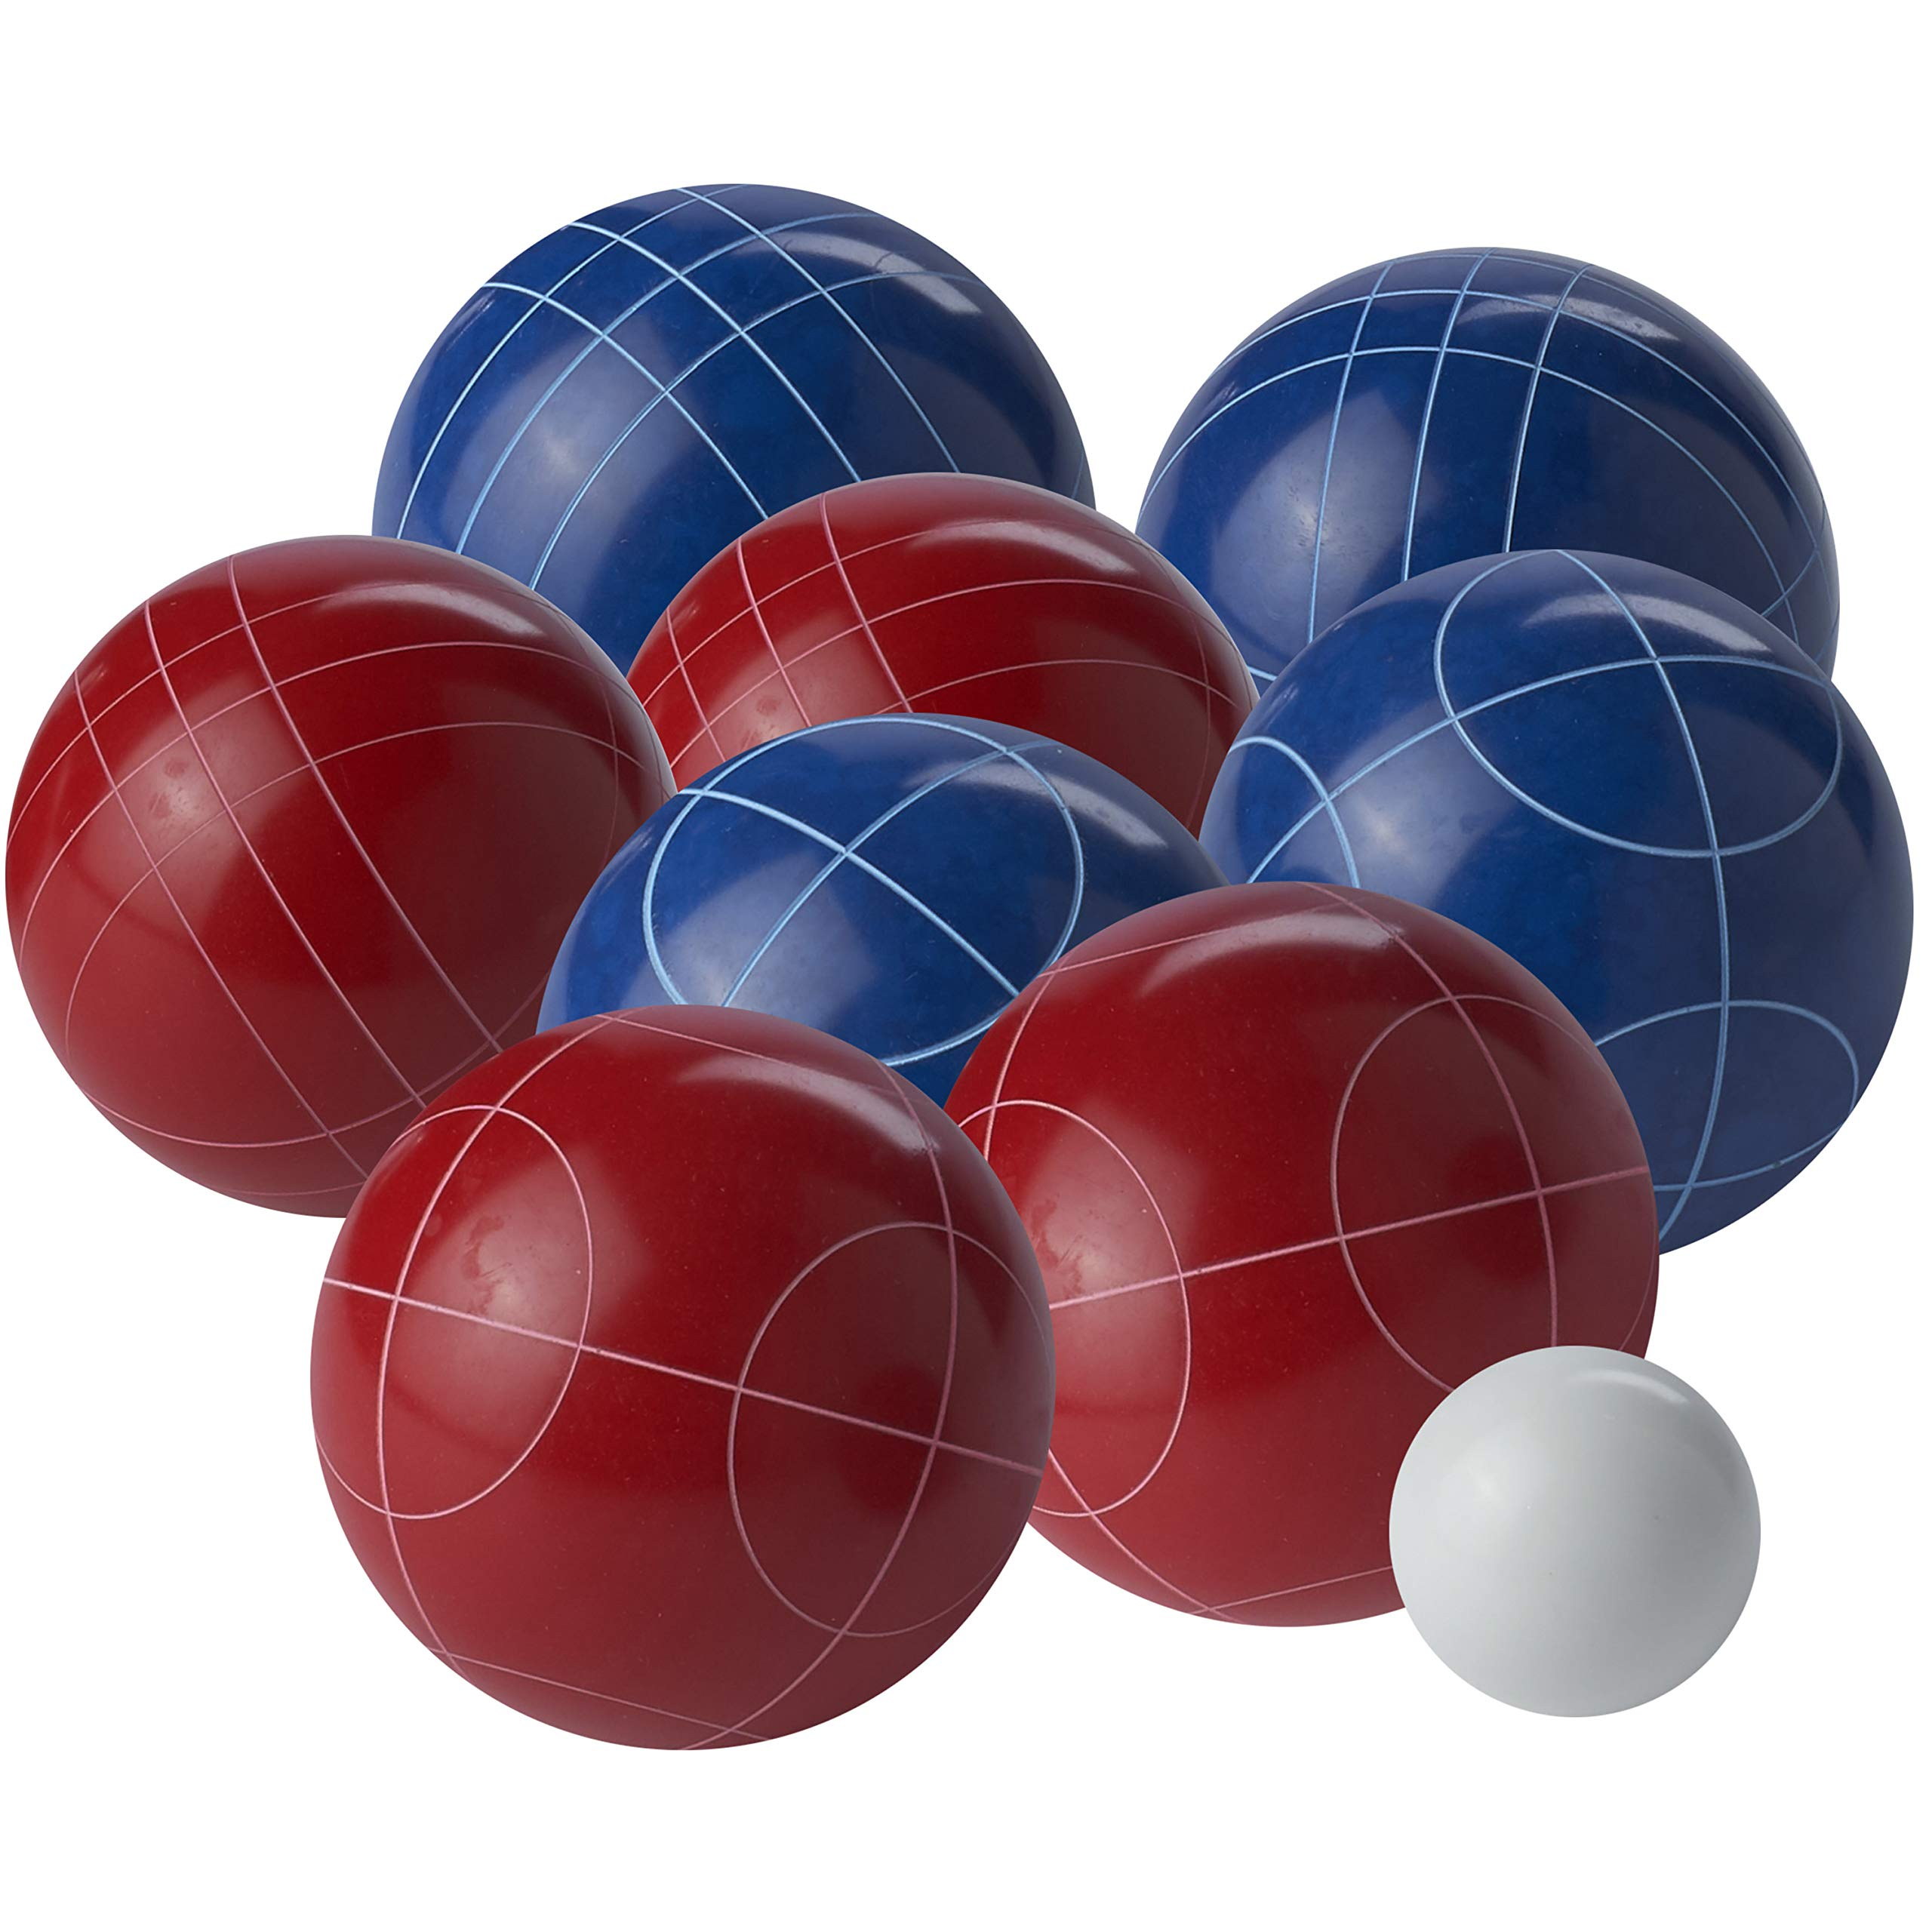 Franklin Sports Bocce Ball Set — Red, White, Blue Bocce Balls and Pallino — Complete, Ready-to-Play Bocce Ball Set — Perfect for Lawn Games, Beach Games, and More